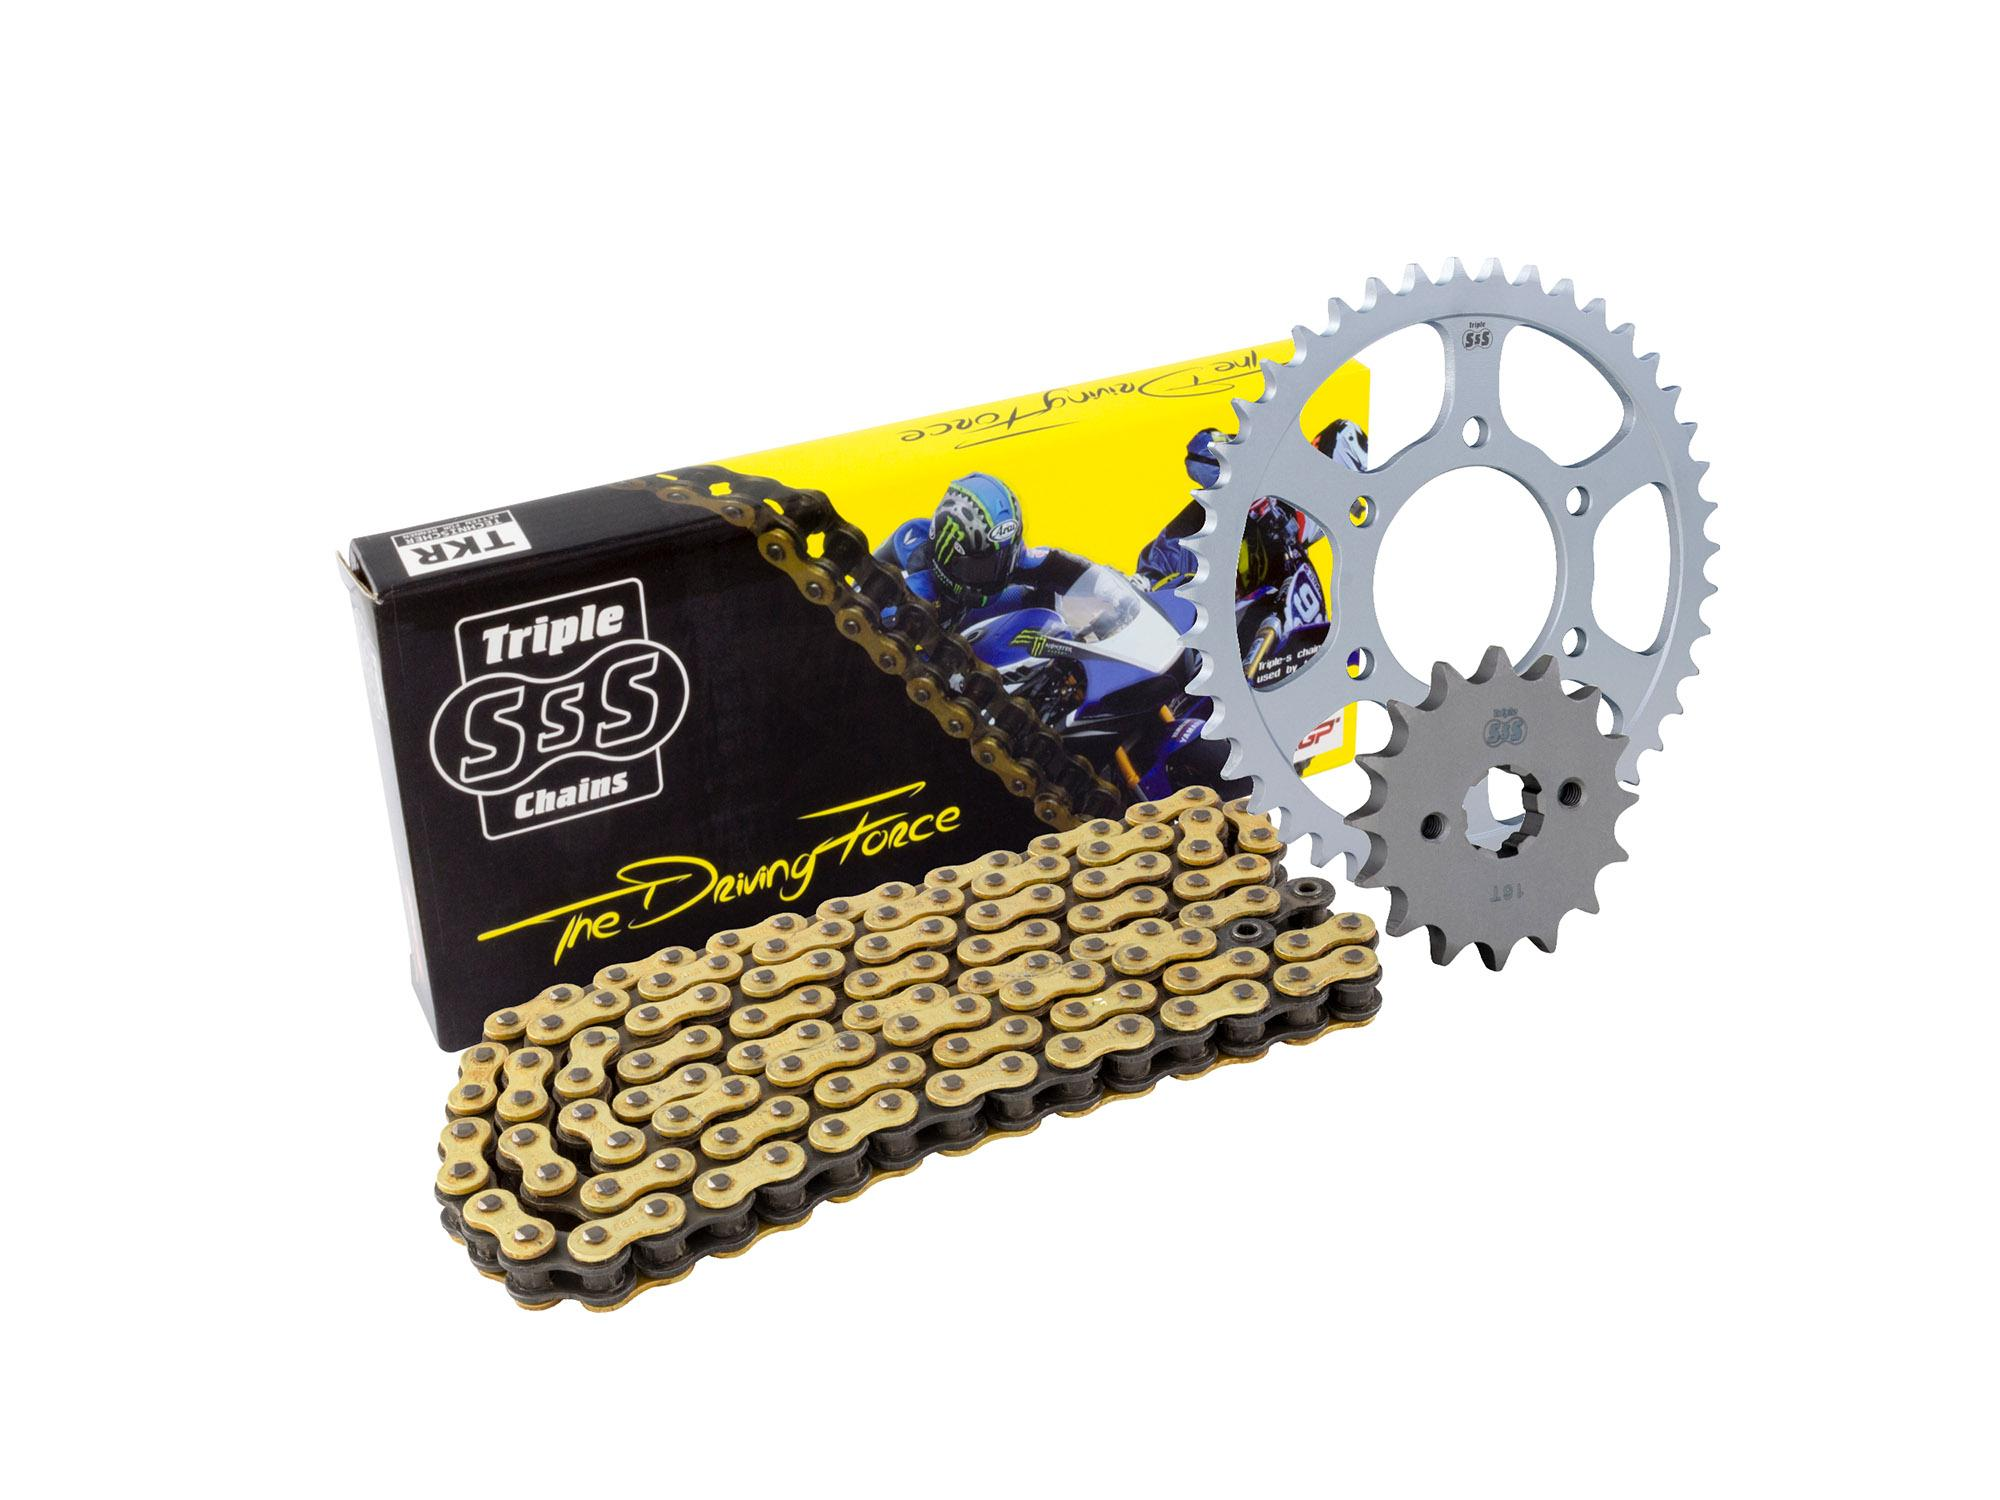 Honda CBR1000RR Fireblade 8/9/A/ C-ABS 08-10 Chain & Sprocket Kit: 16T Front, 42T Rear, HD O-Ring Gold Chain 530H 116Link